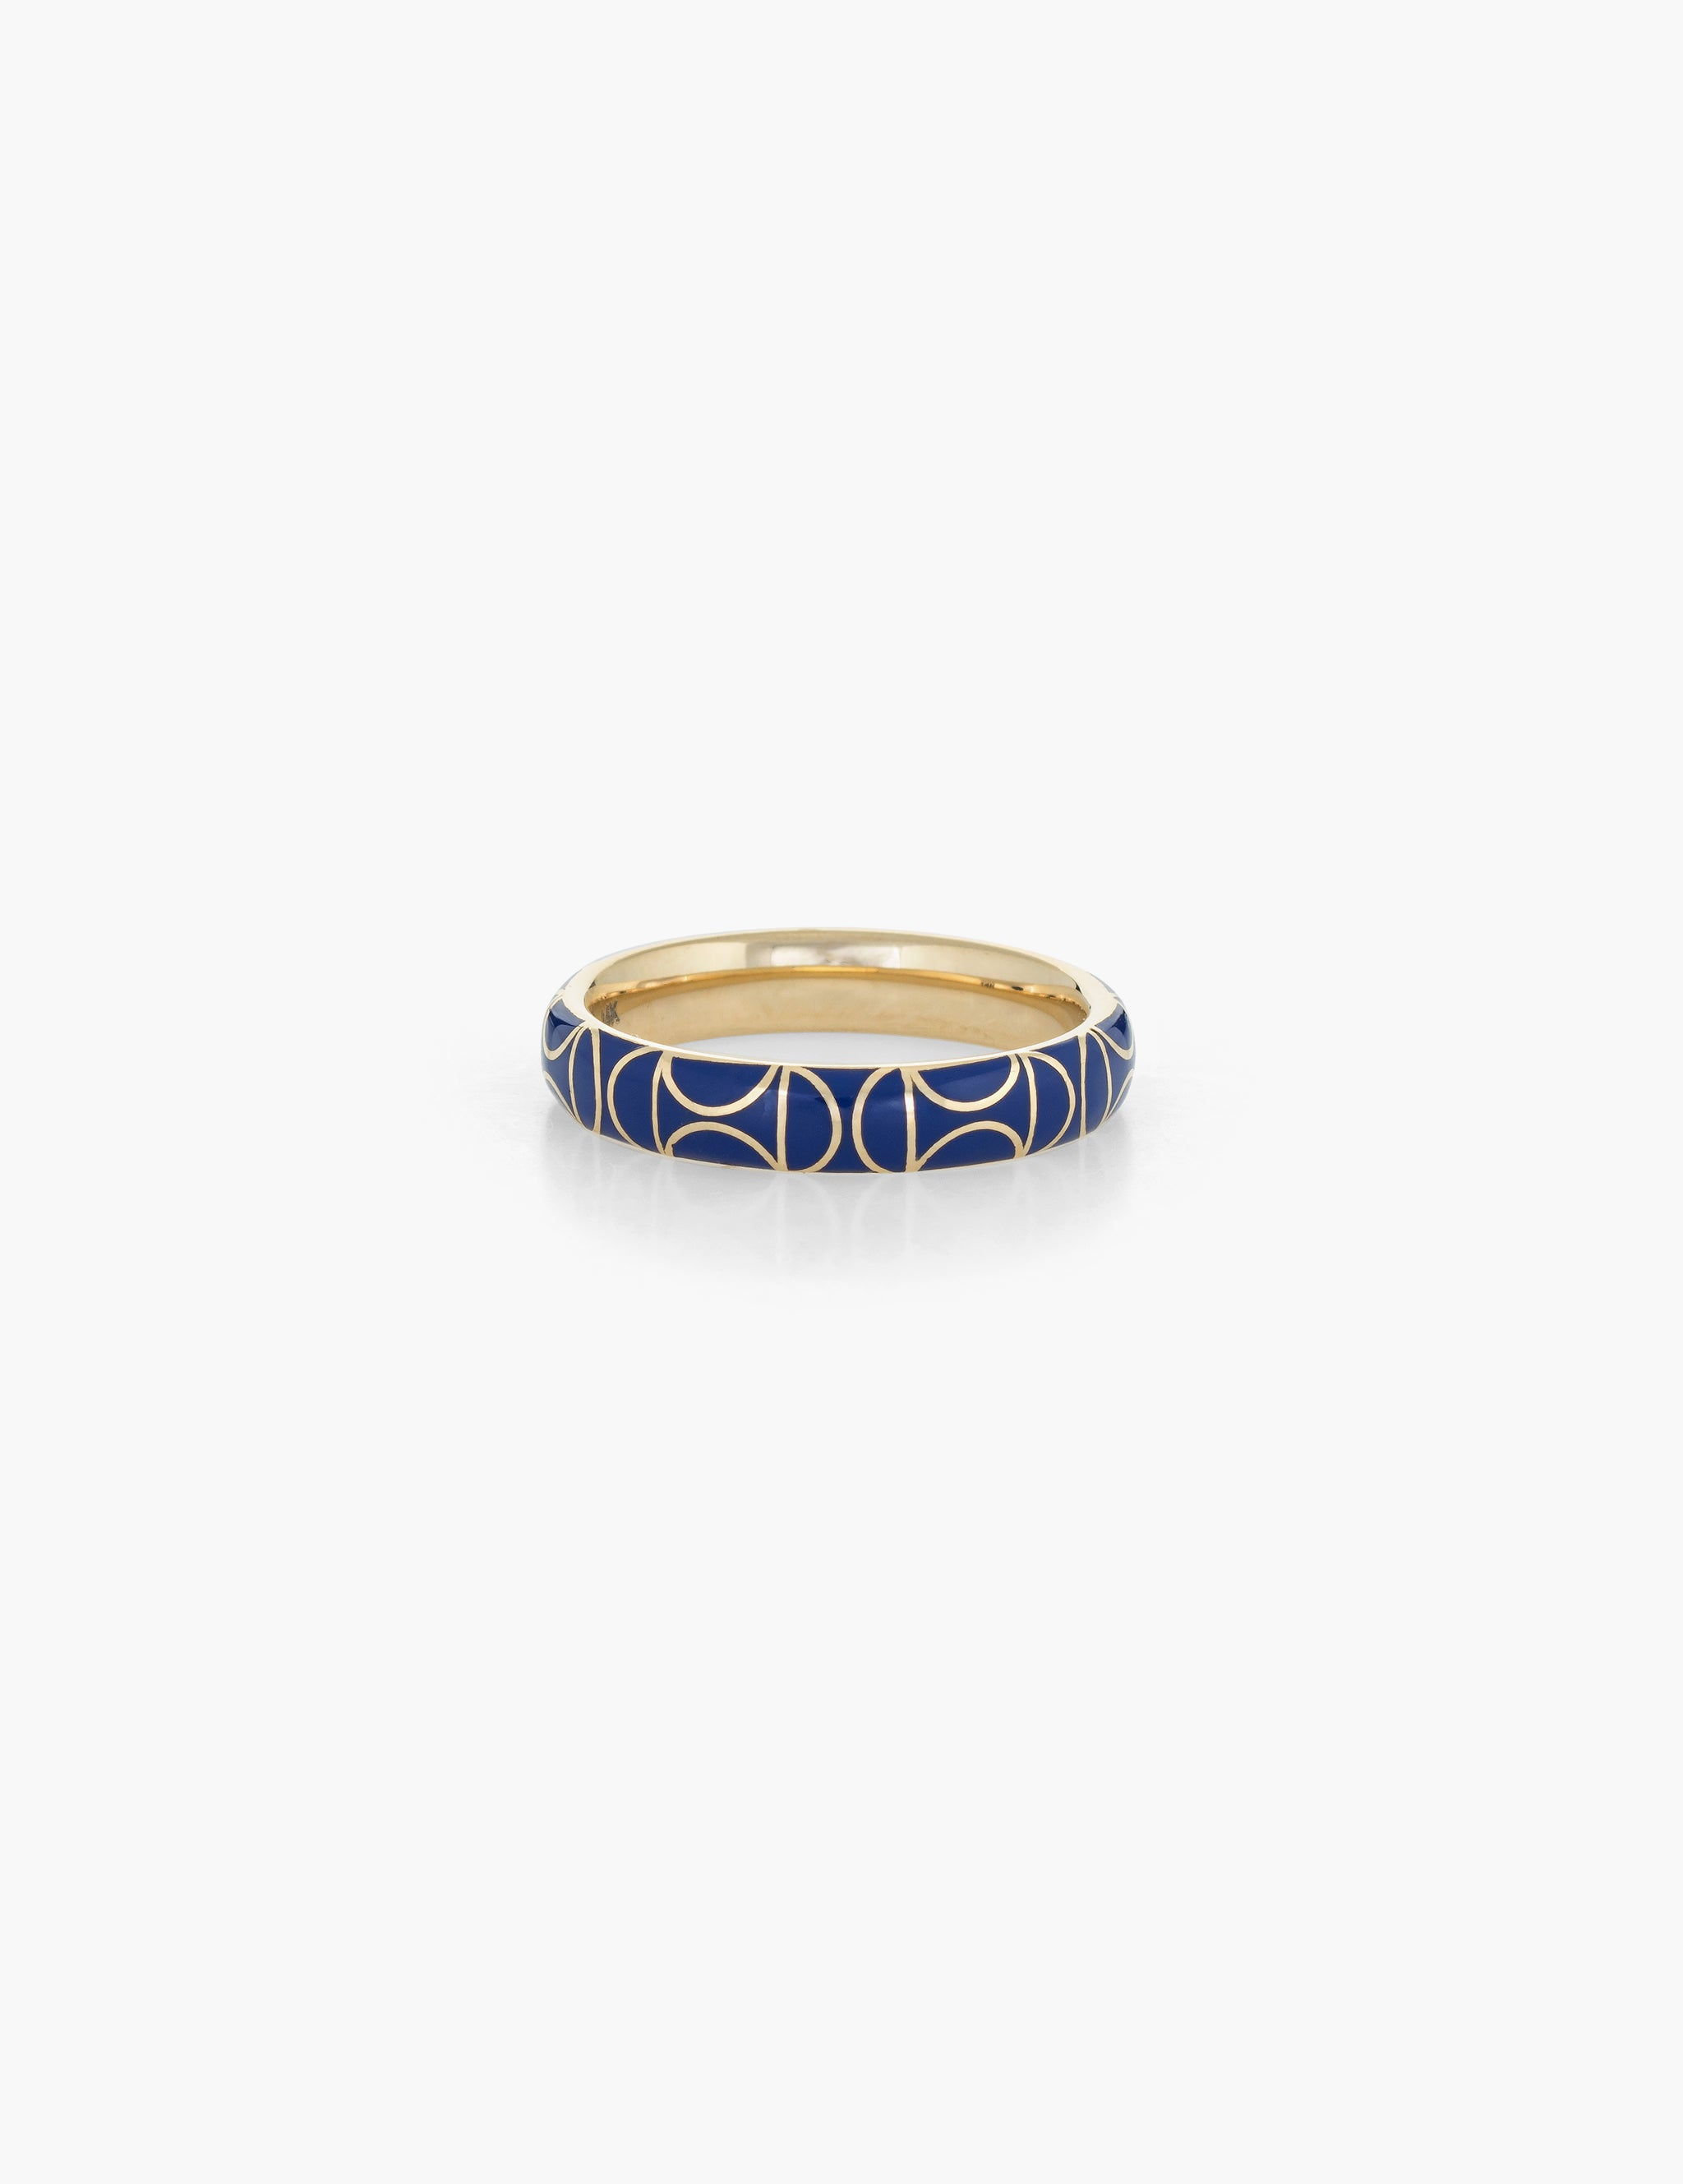 Deco motif Enamel Ring